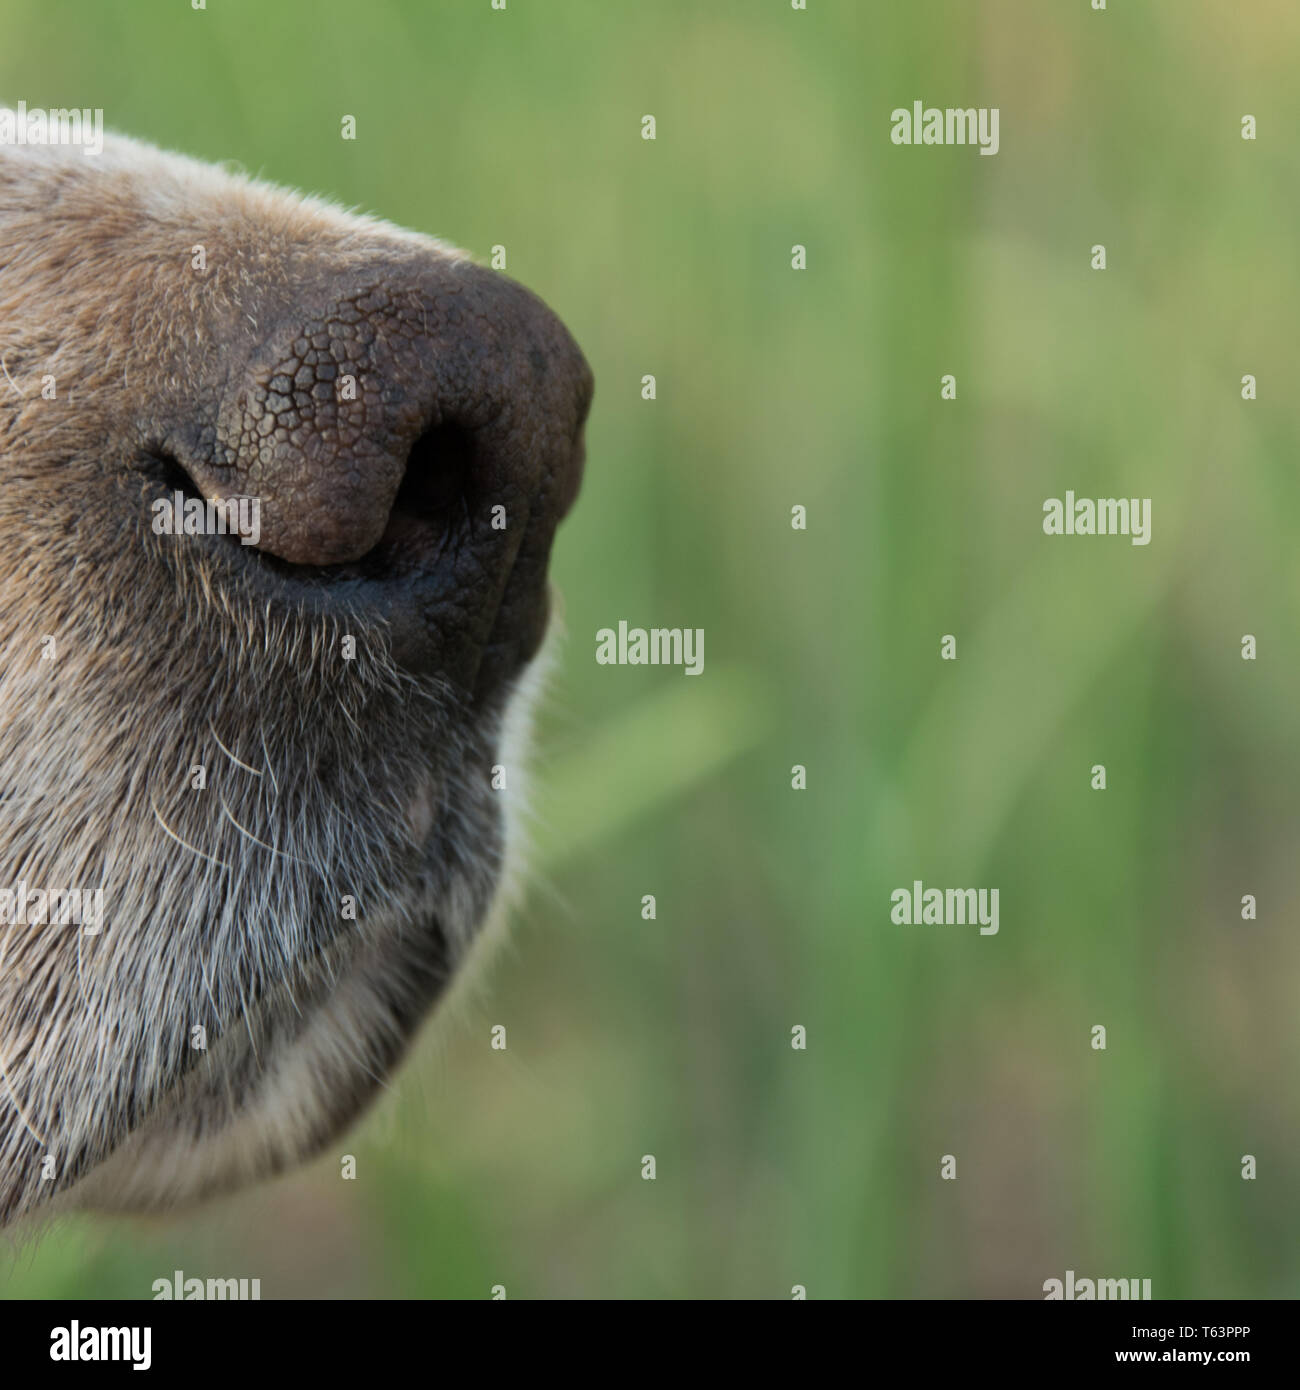 Close up view of (English setter) dog nose, space for text - Stock Image